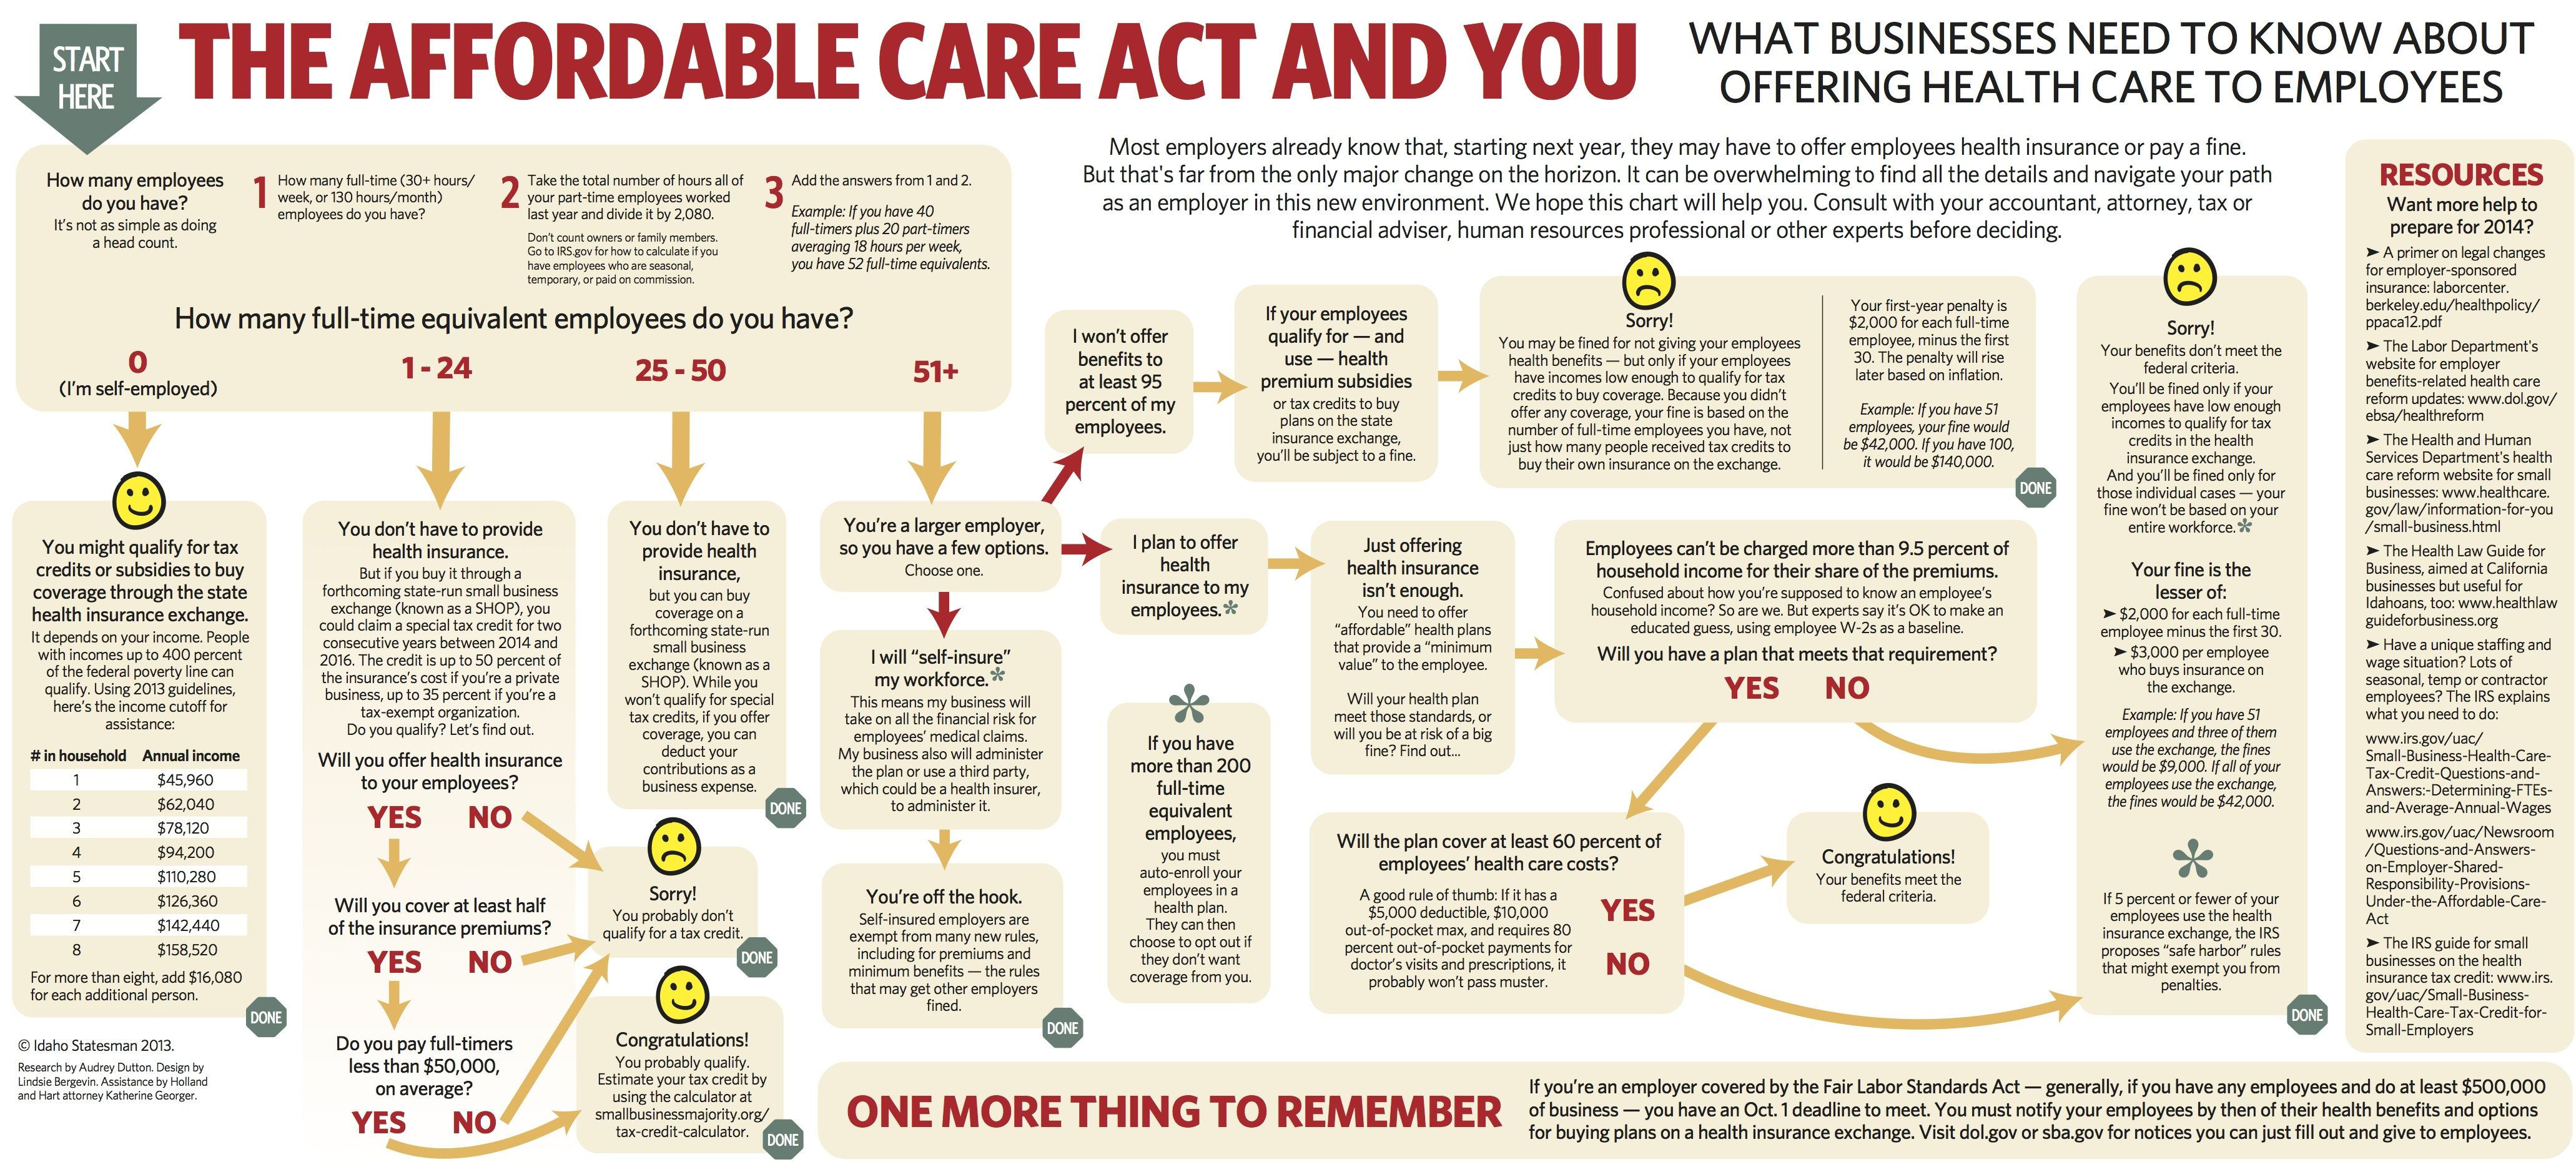 Affordable Health Care Act Aka Obamacare What Businesses Need To